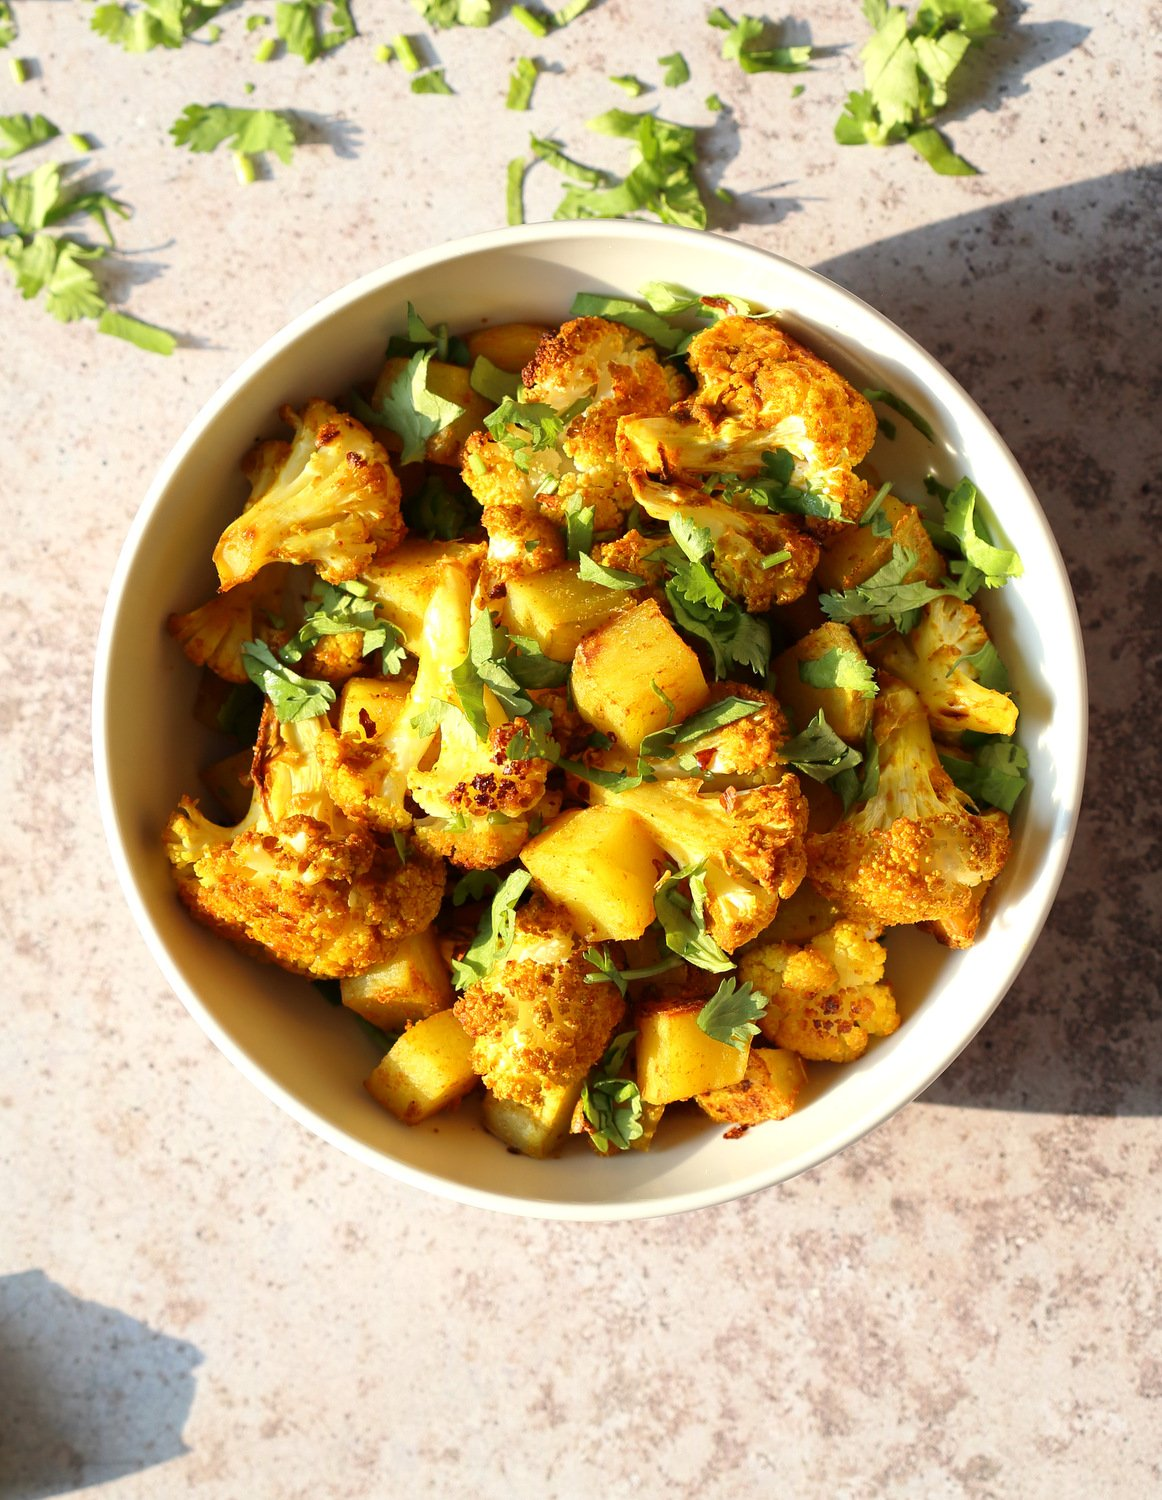 Baked Aloo Gobi - Indian Spiced Potato Cauliflower. 10 Mins Active. Toss with spices, put it to bake, and done! No Standing around, no Mushy Cauliflower! Same Amazing Indian flavor and excellent texture. Tips and options for Aloo Gobi Subzi that bakes perfectly every time! #Vegan #Glutenfree #Soyfree #Nutfree #VeganRicha #aloogobi #Recipe